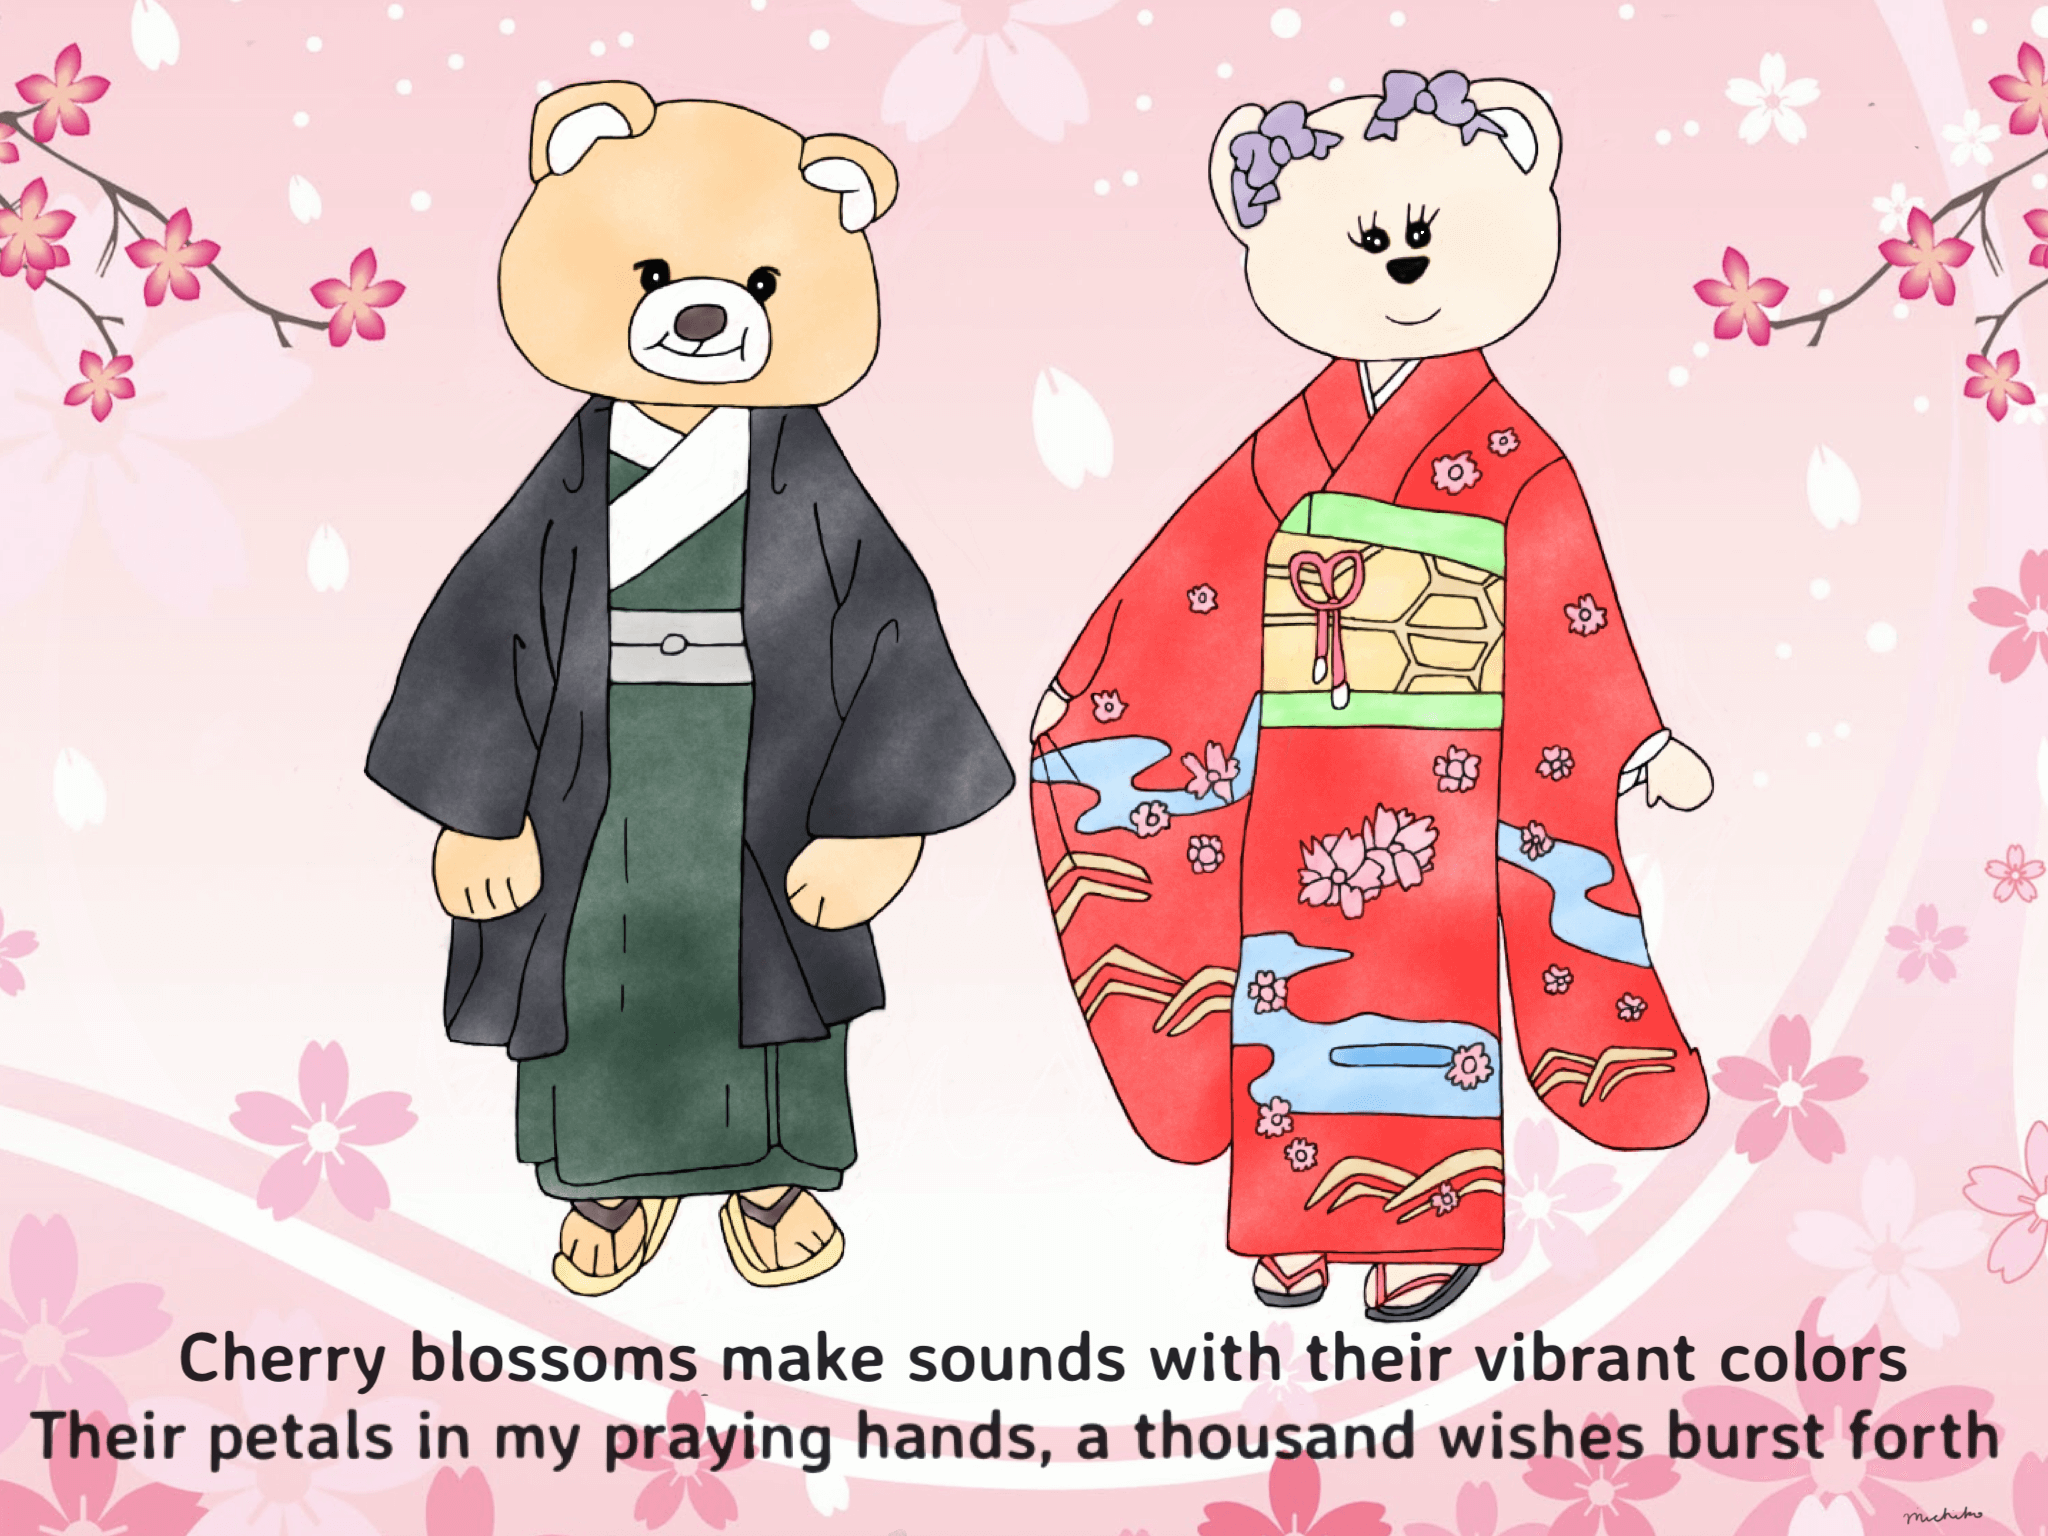 Cherry blossoms and their colors